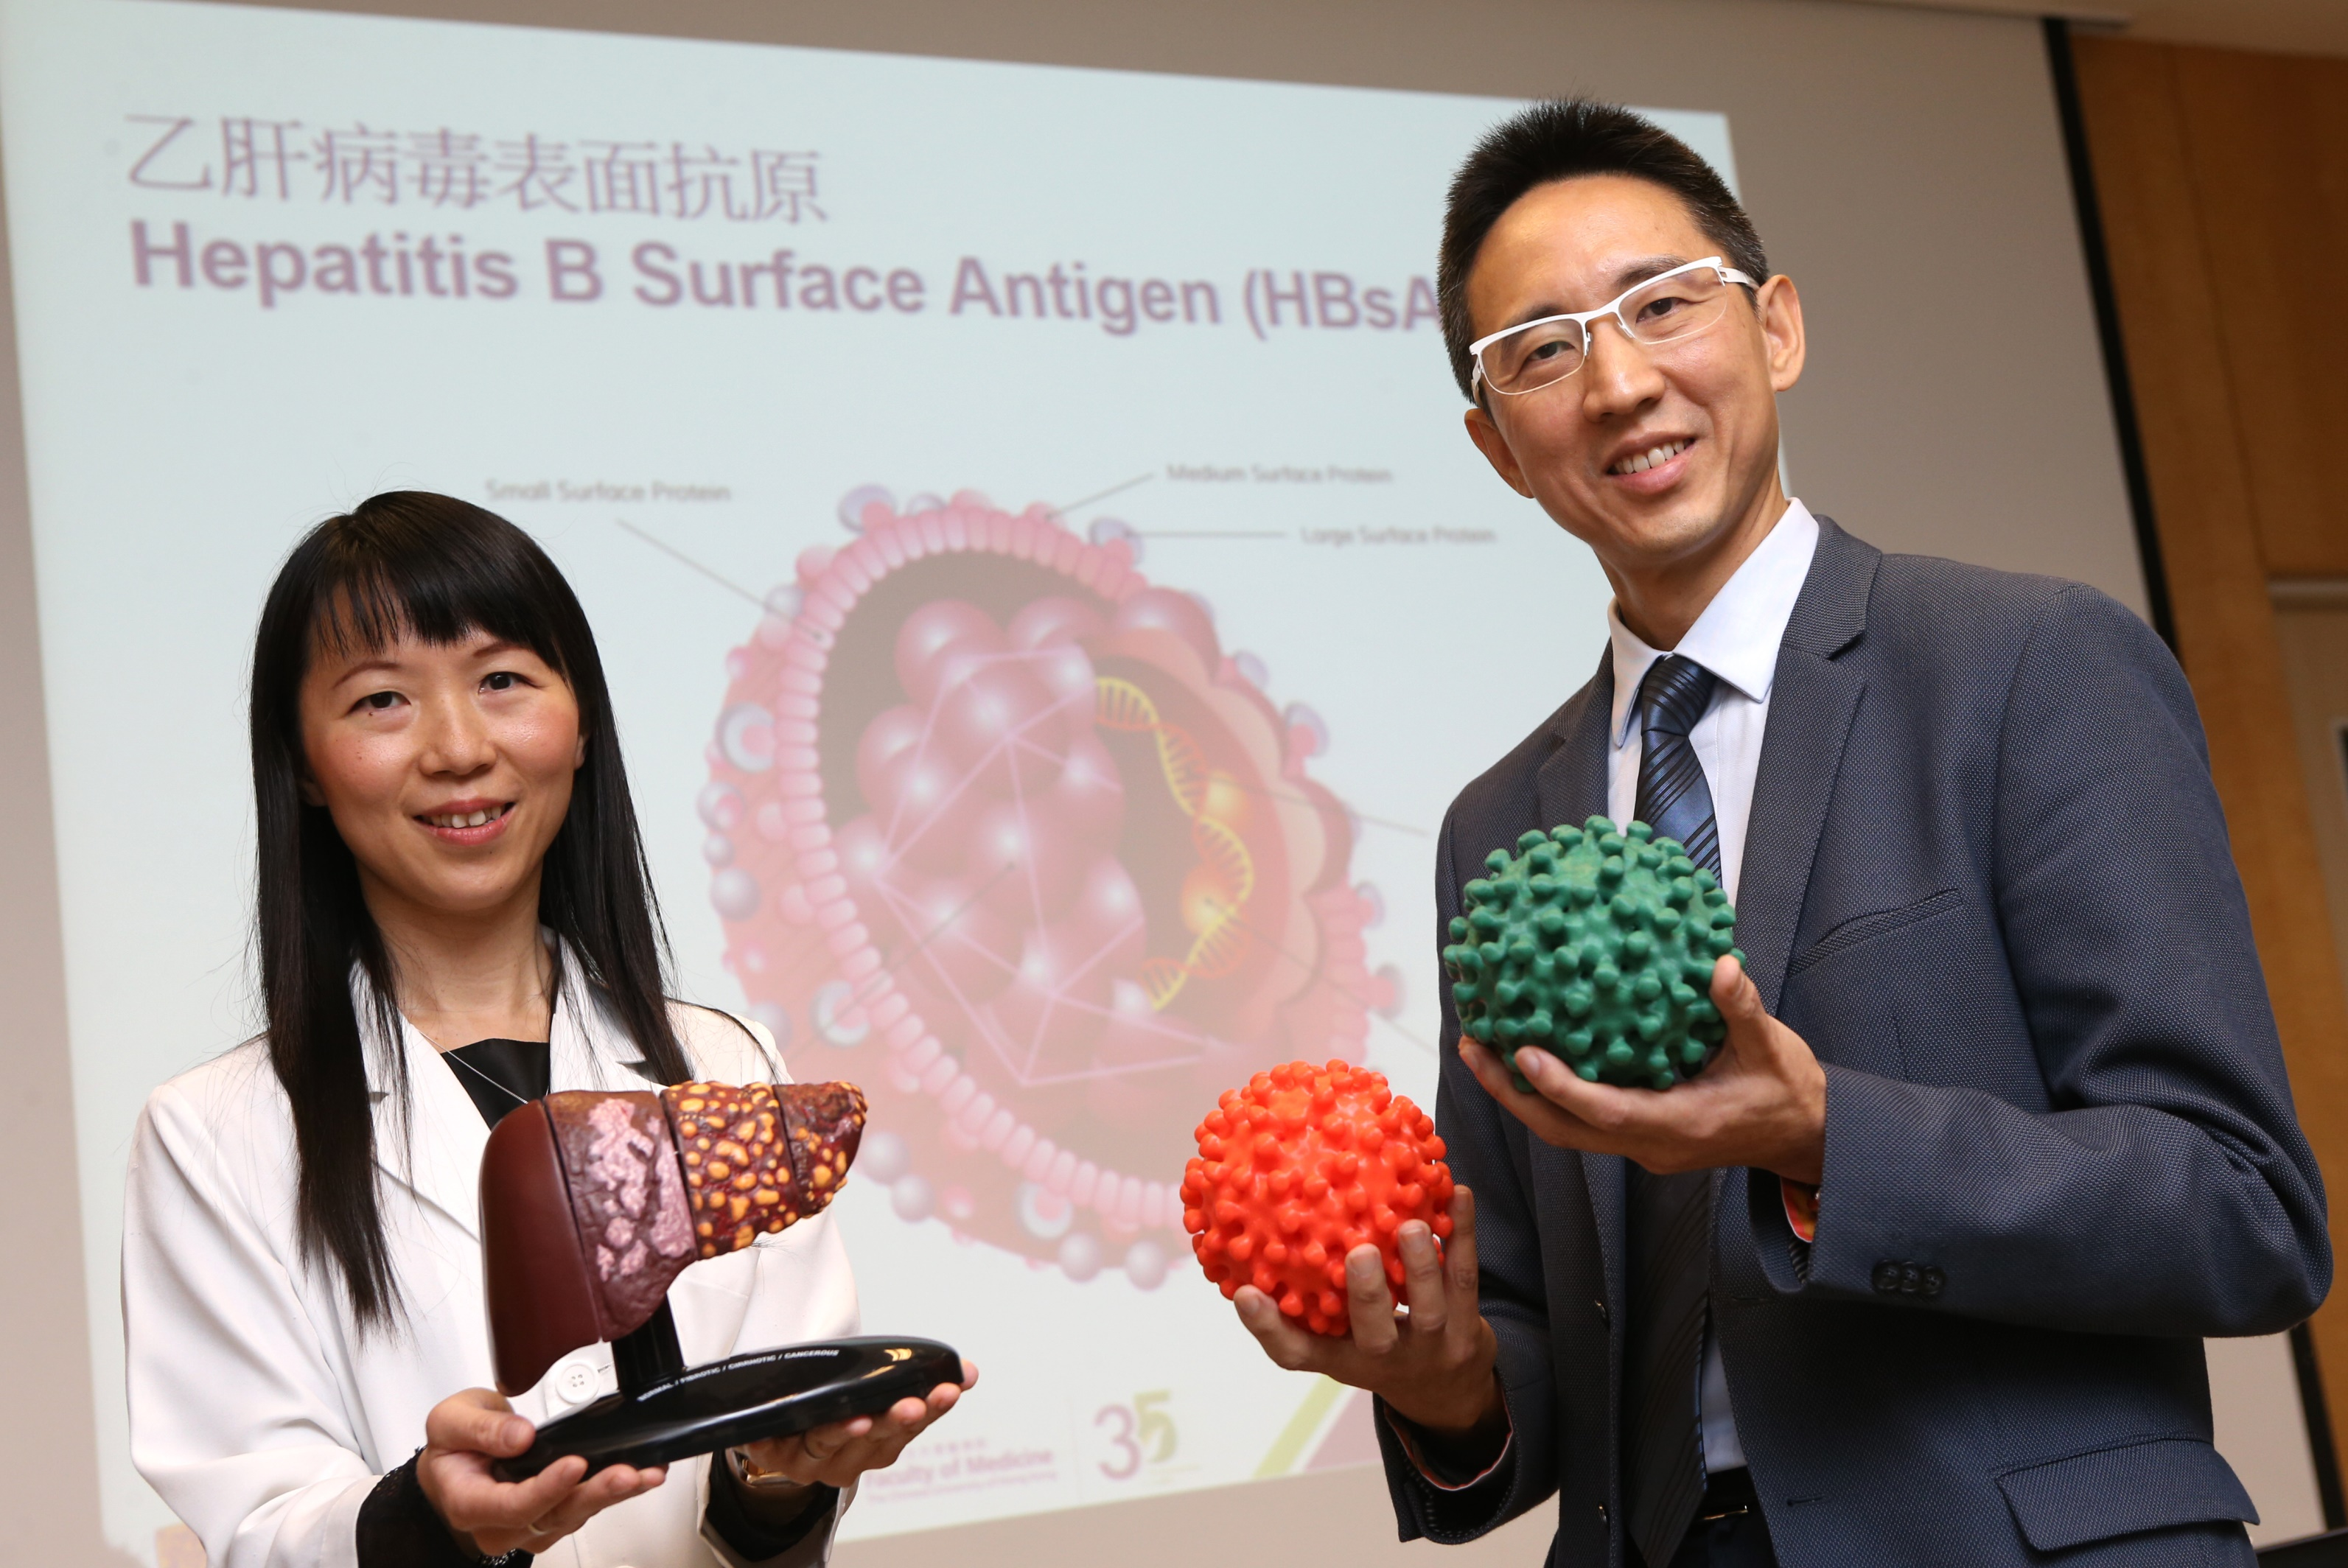 Researchers from the Faculty of Medicine of The Chinese University of Hong Kong (CUHK) find that patients with seroclearance of hepatitis B surface antigen (HBsAg), which means recovery of hepatitis B, are still at risk of developing liver cancer. Study results show that male patients who achieved recovery after the age of 50 have a higher risk. Featured are (right) Professor Henry CHAN, Director of the Center for Liver Health, Faculty of Medicine at CUHK, and Professor Grace WONG, Division of Gastroenterology and Hepatology, Department of Medicine and Therapeutics, Faculty of Medicine at CUHK.